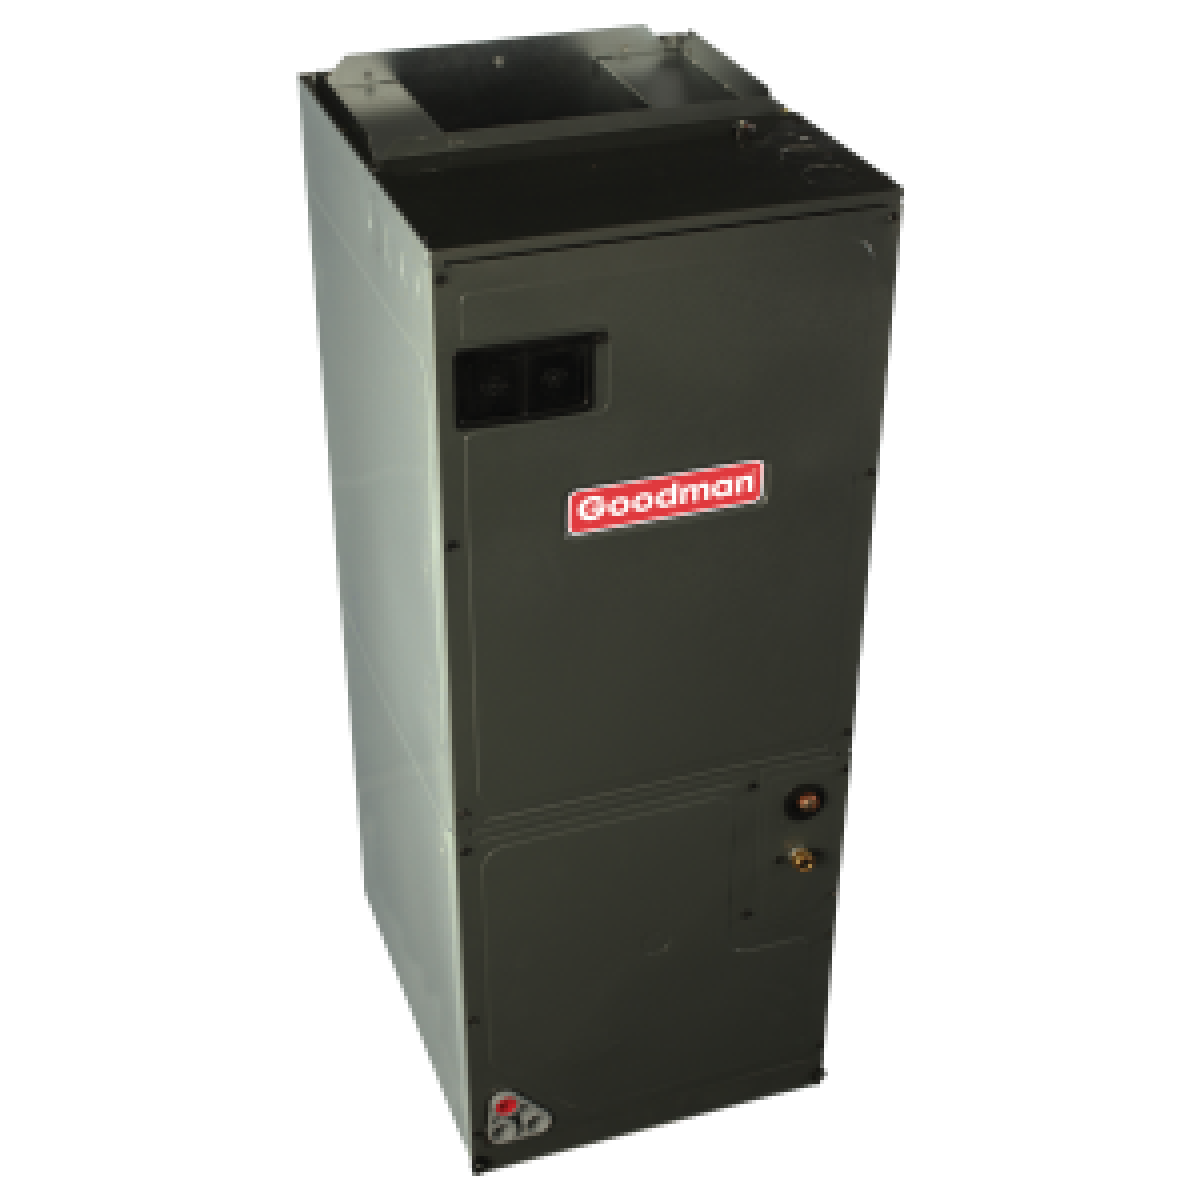 Goodman 3 5 Ton 14 Seer Heat Pump Split System 3 5 Ton